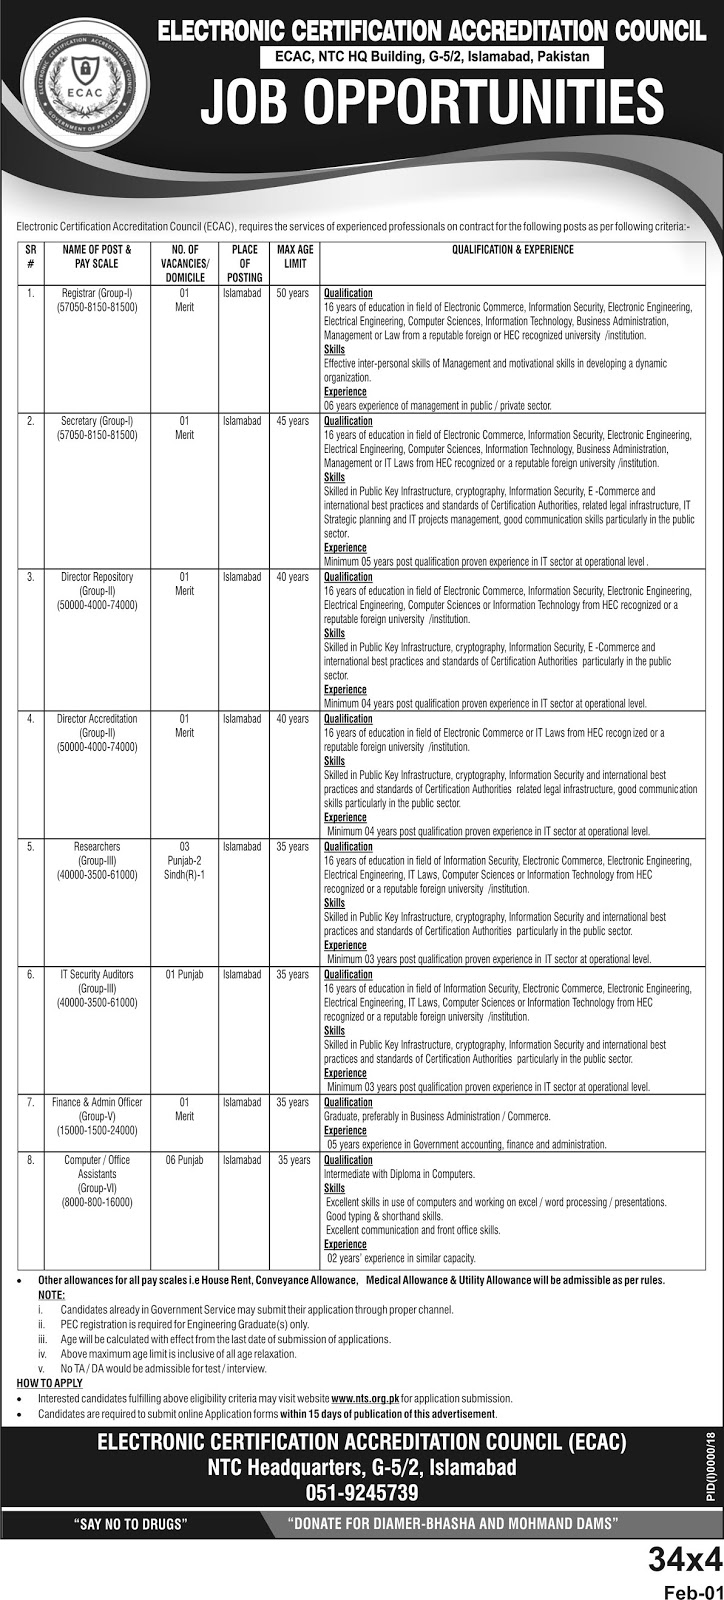 Electronic Certification Accreditation Council (ECAC) Jobs 2019 apply through NTS